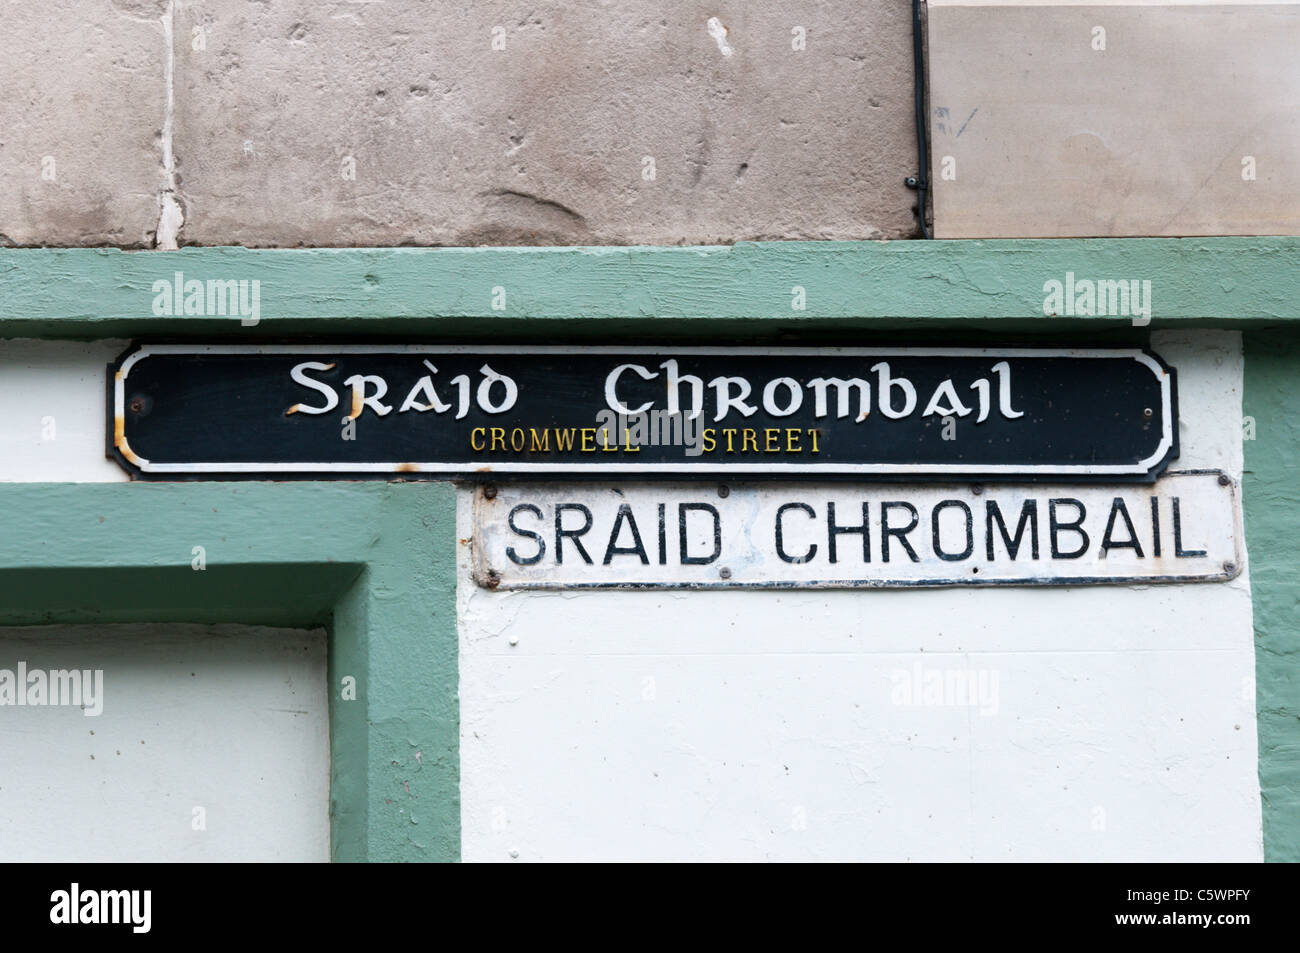 Gaelic and English street name signs in Stornoway, Outer Hebrides - Stock Image